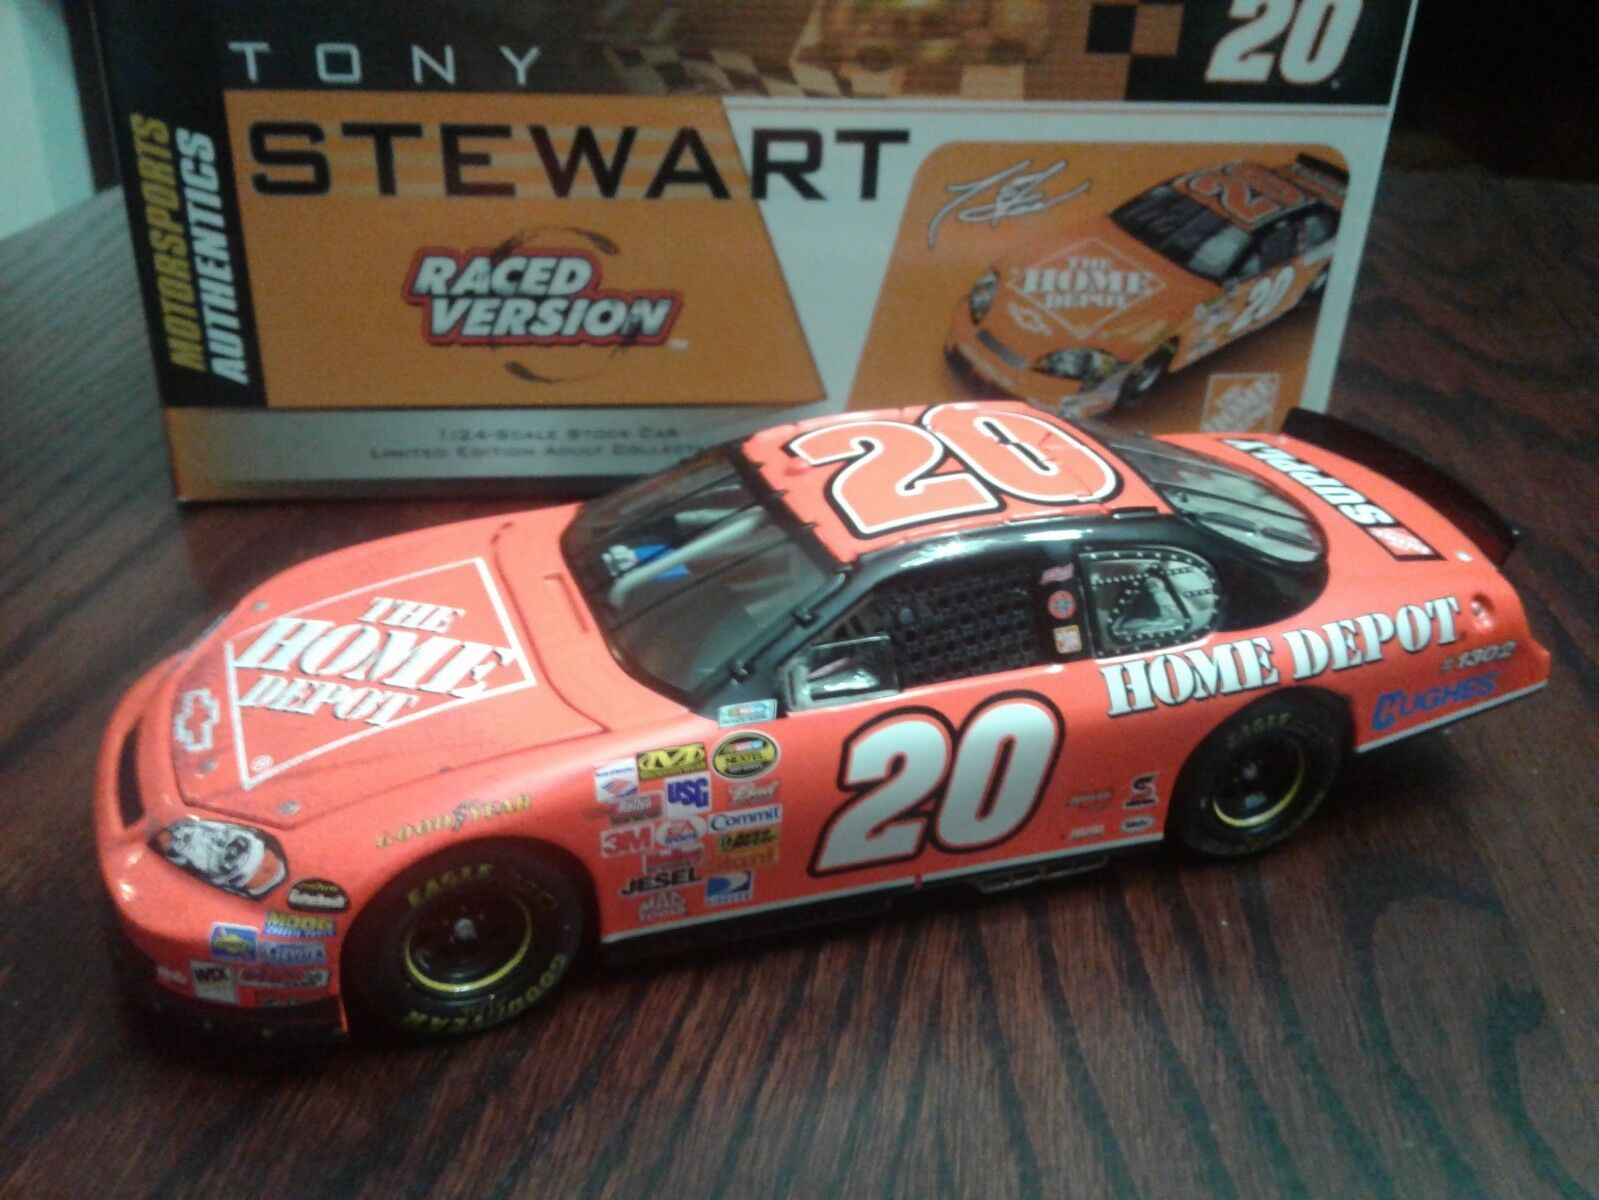 2006 RCCA Tony Stewart  20 Home Depot Martinsville Raced Win 1 24 1 of 150